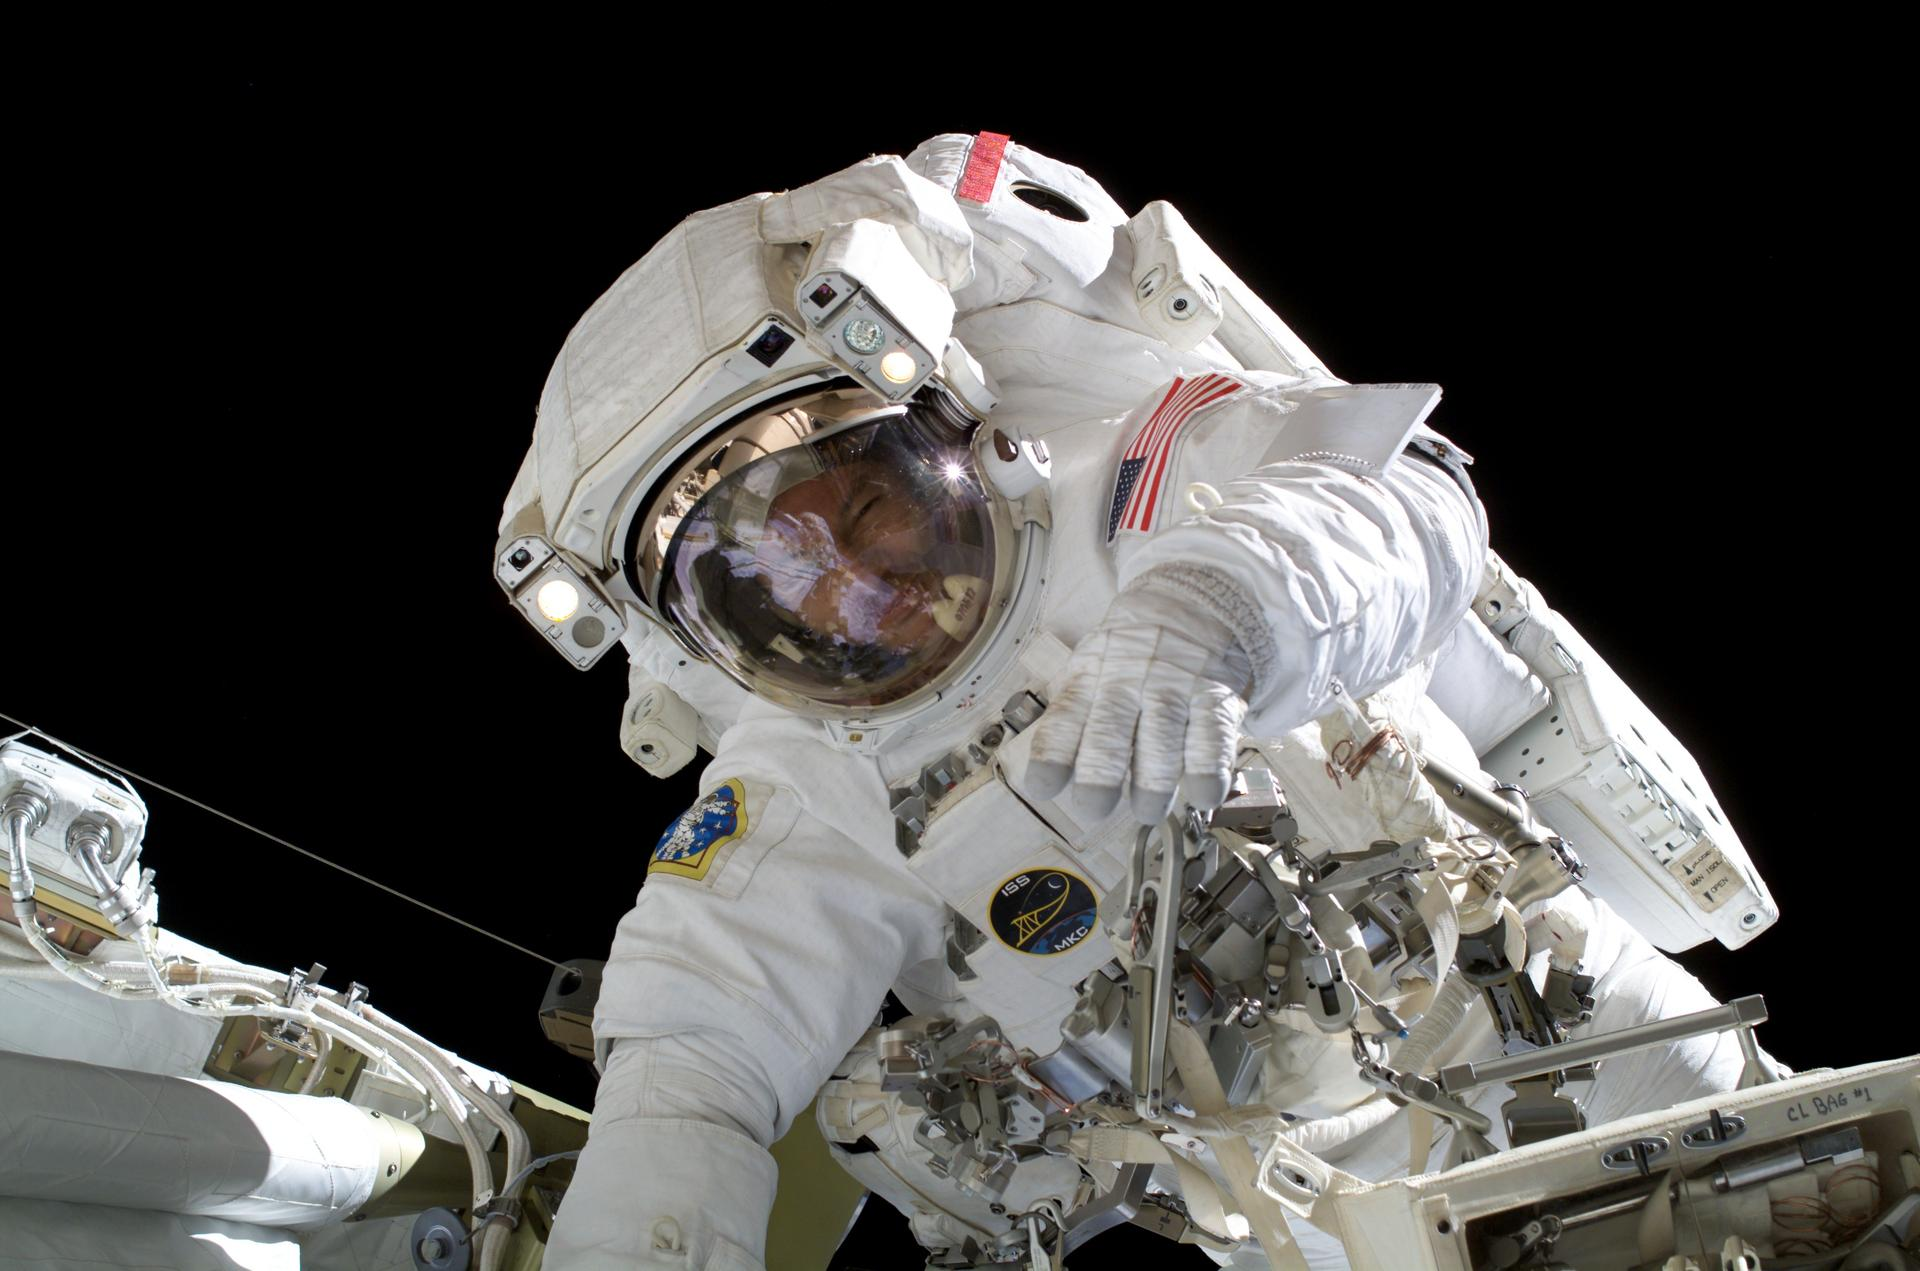 Astronaut Michael Lopez-Alegria Works on Constructing the International Space Station